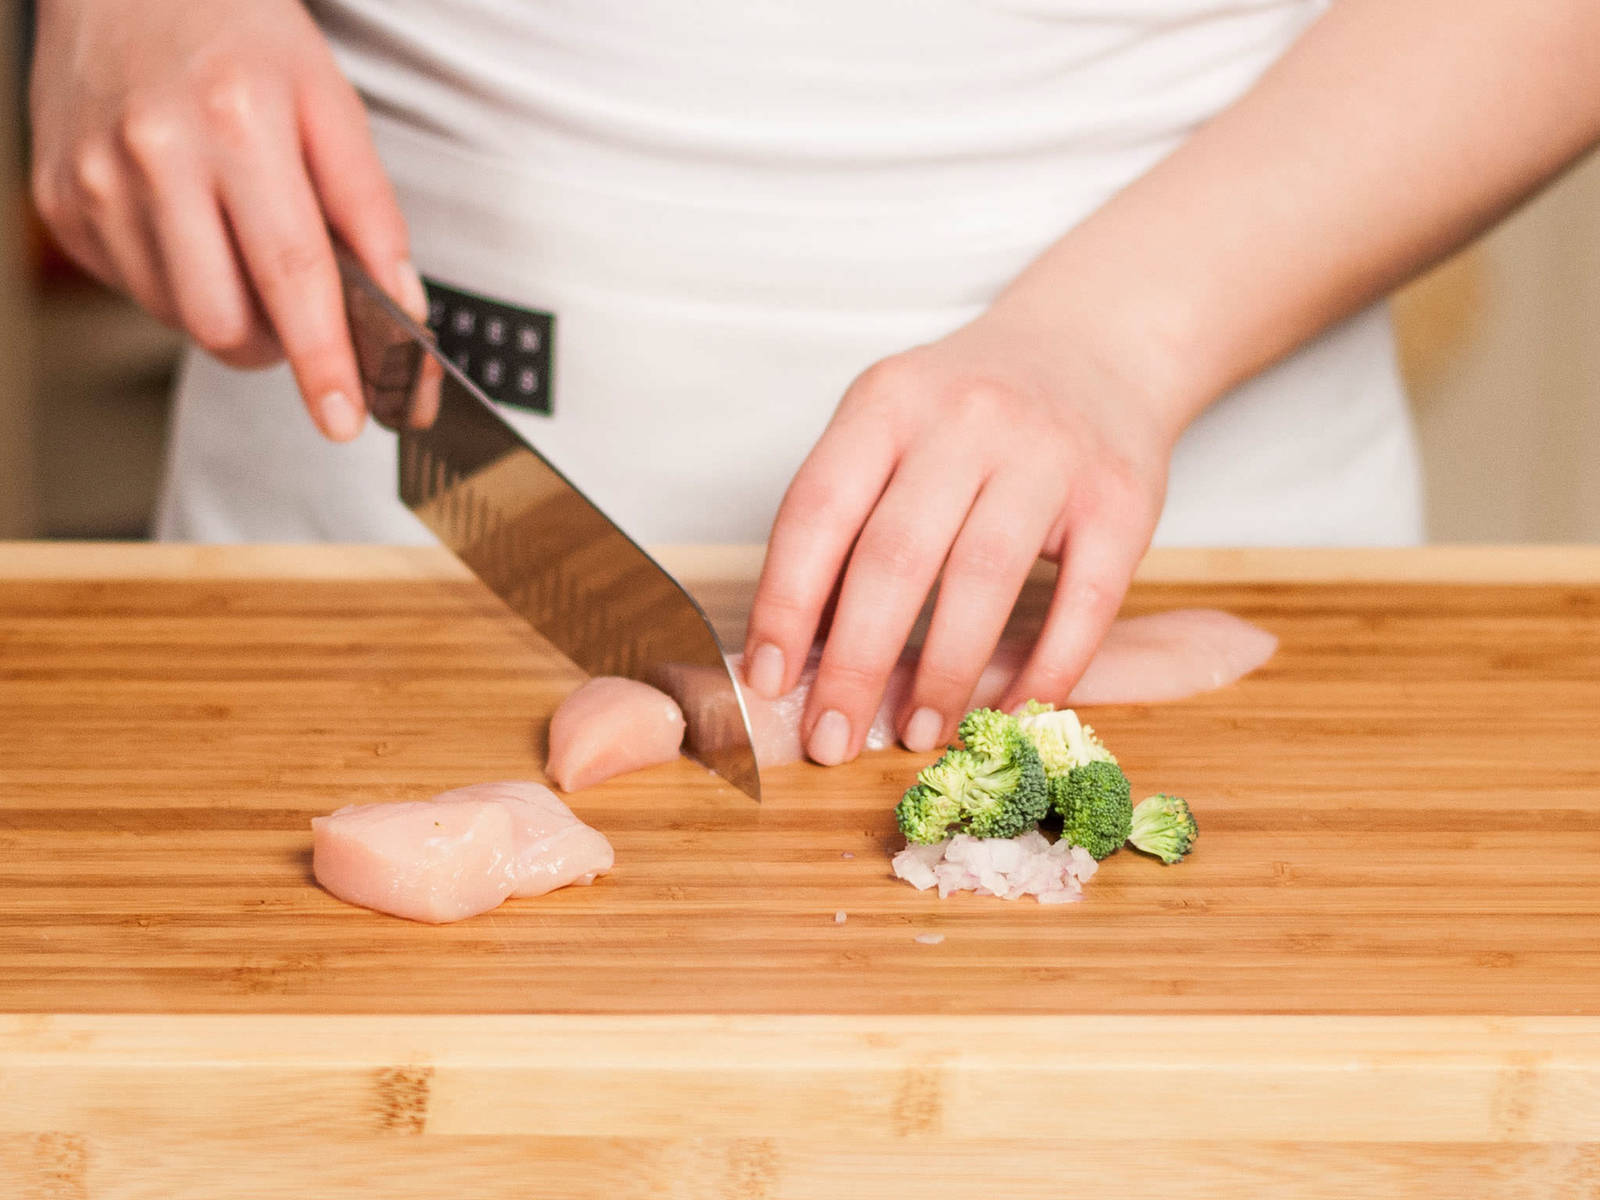 Peel onion and chop finely. Cut broccoli into small florets. Cut chicken breast into bite-sized pieces.